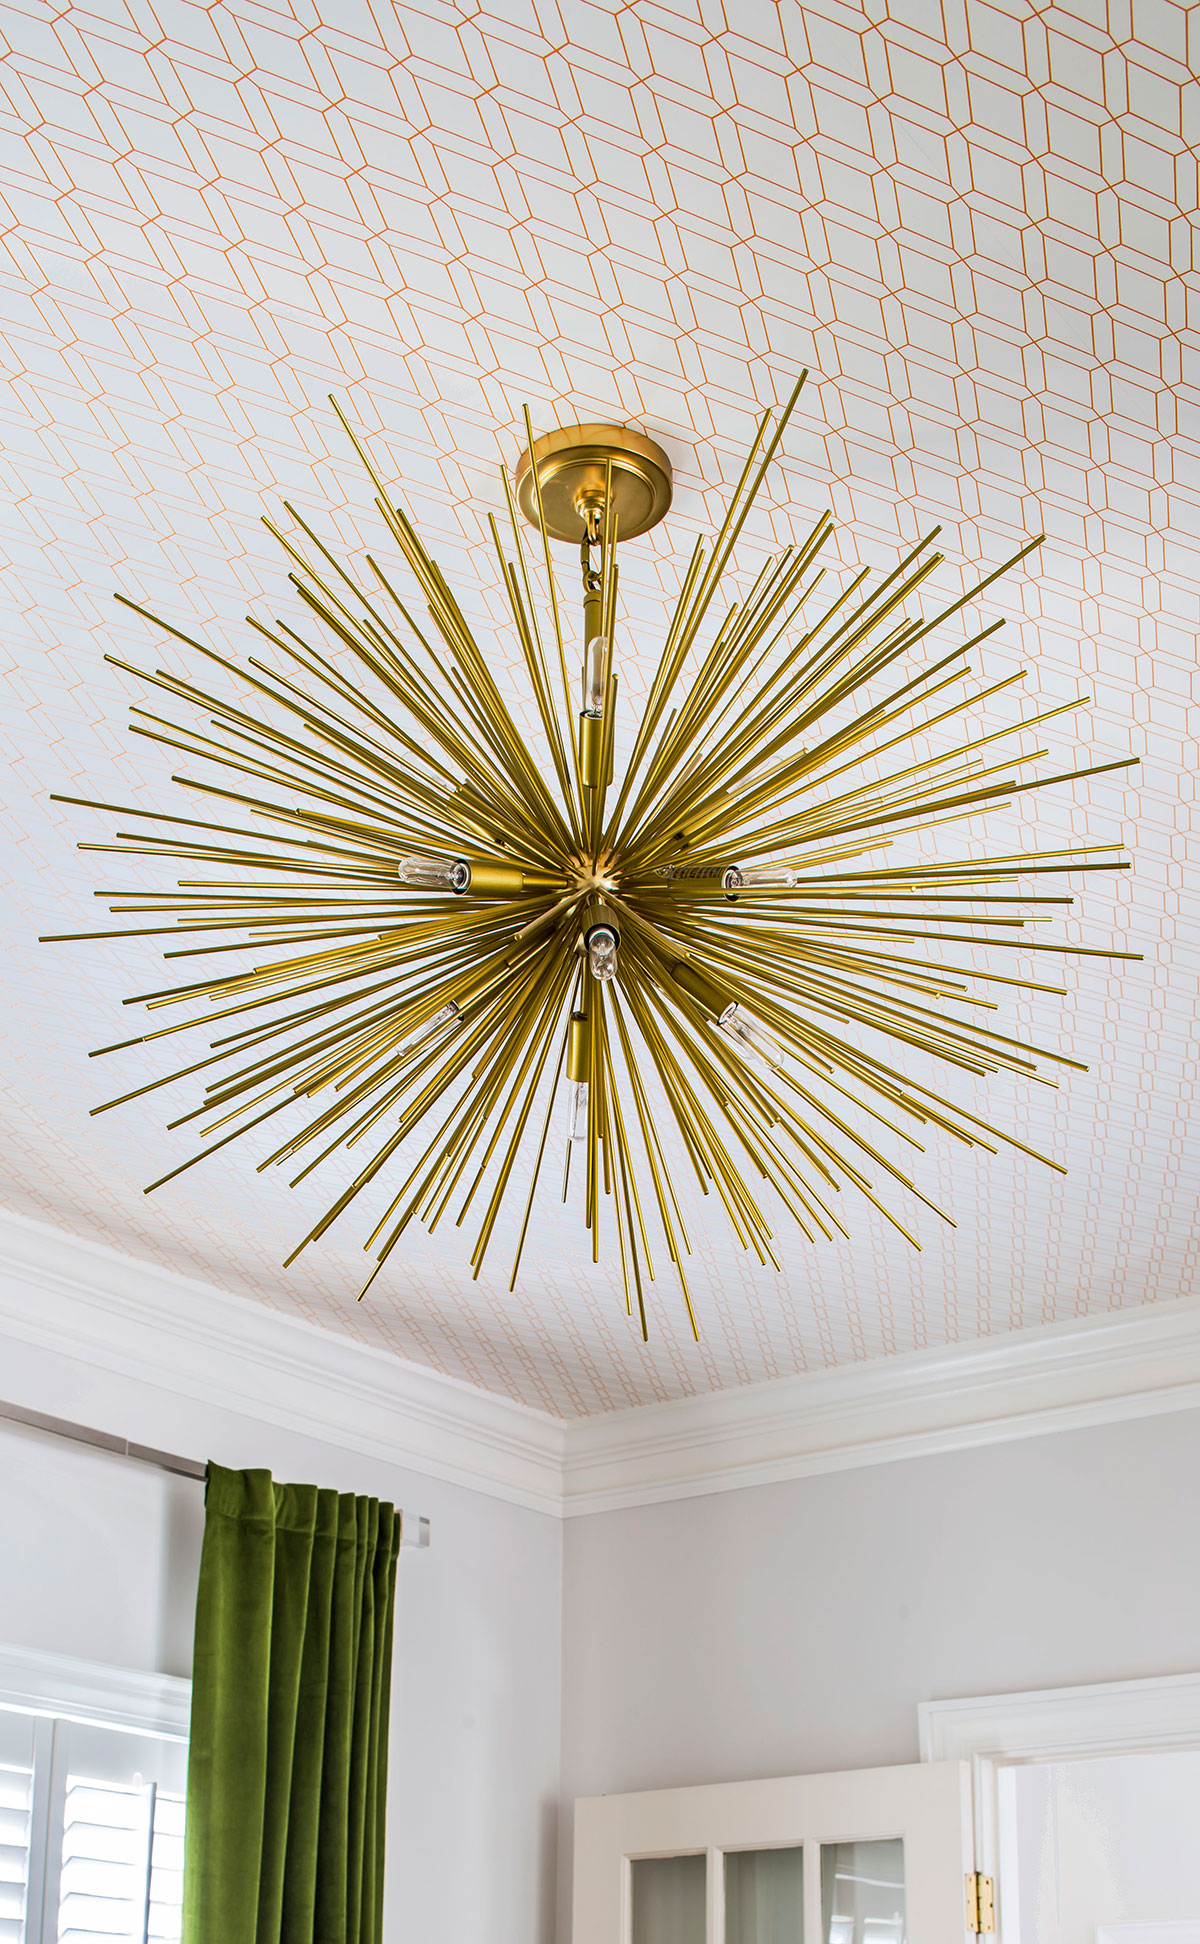 Wallpapered ceiling with brass midcentury modern chandelier